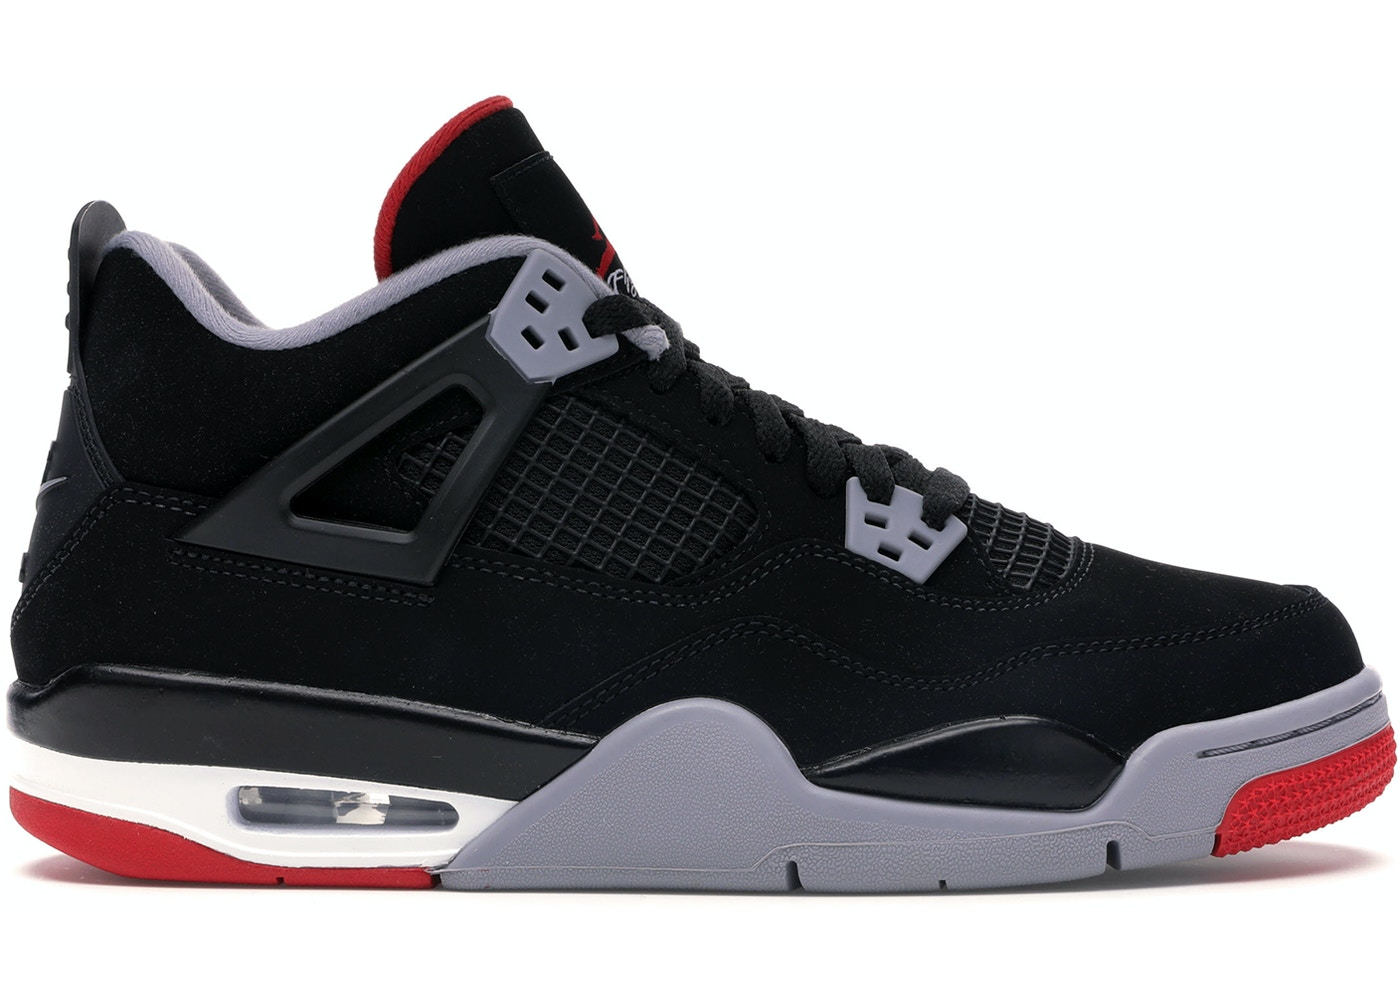 8bd48343c8bc54 Sell. or Ask. Size  7Y. View All Bids. Jordan 4 Retro Bred 2019 (GS)